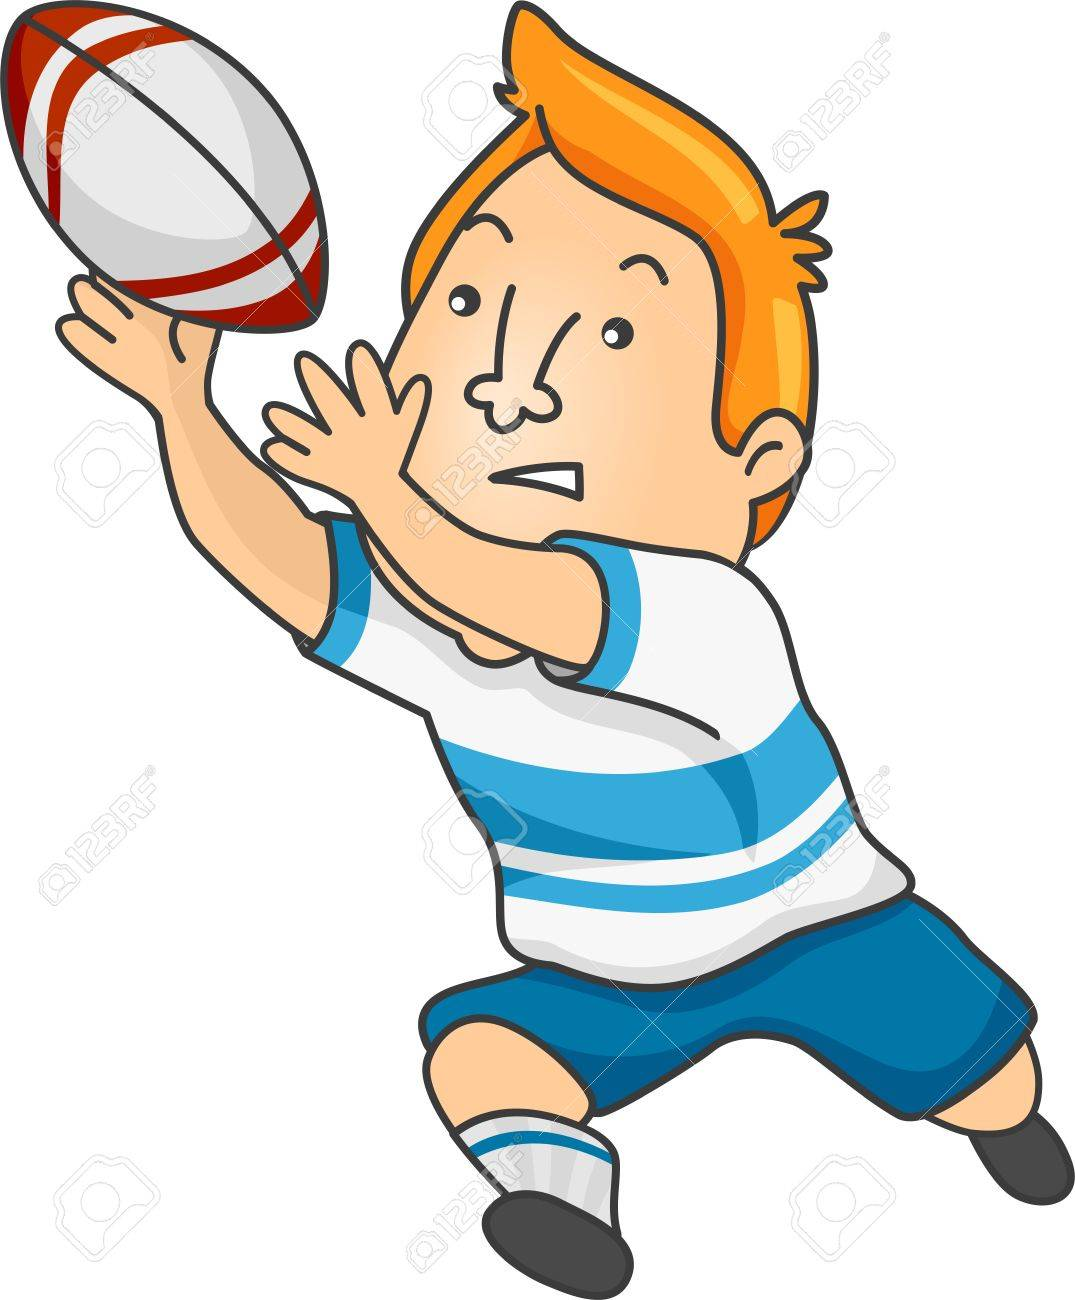 illustration of a rugby player catching a rugby ball royalty free rh 123rf com rugby clipart png rugby clipart images